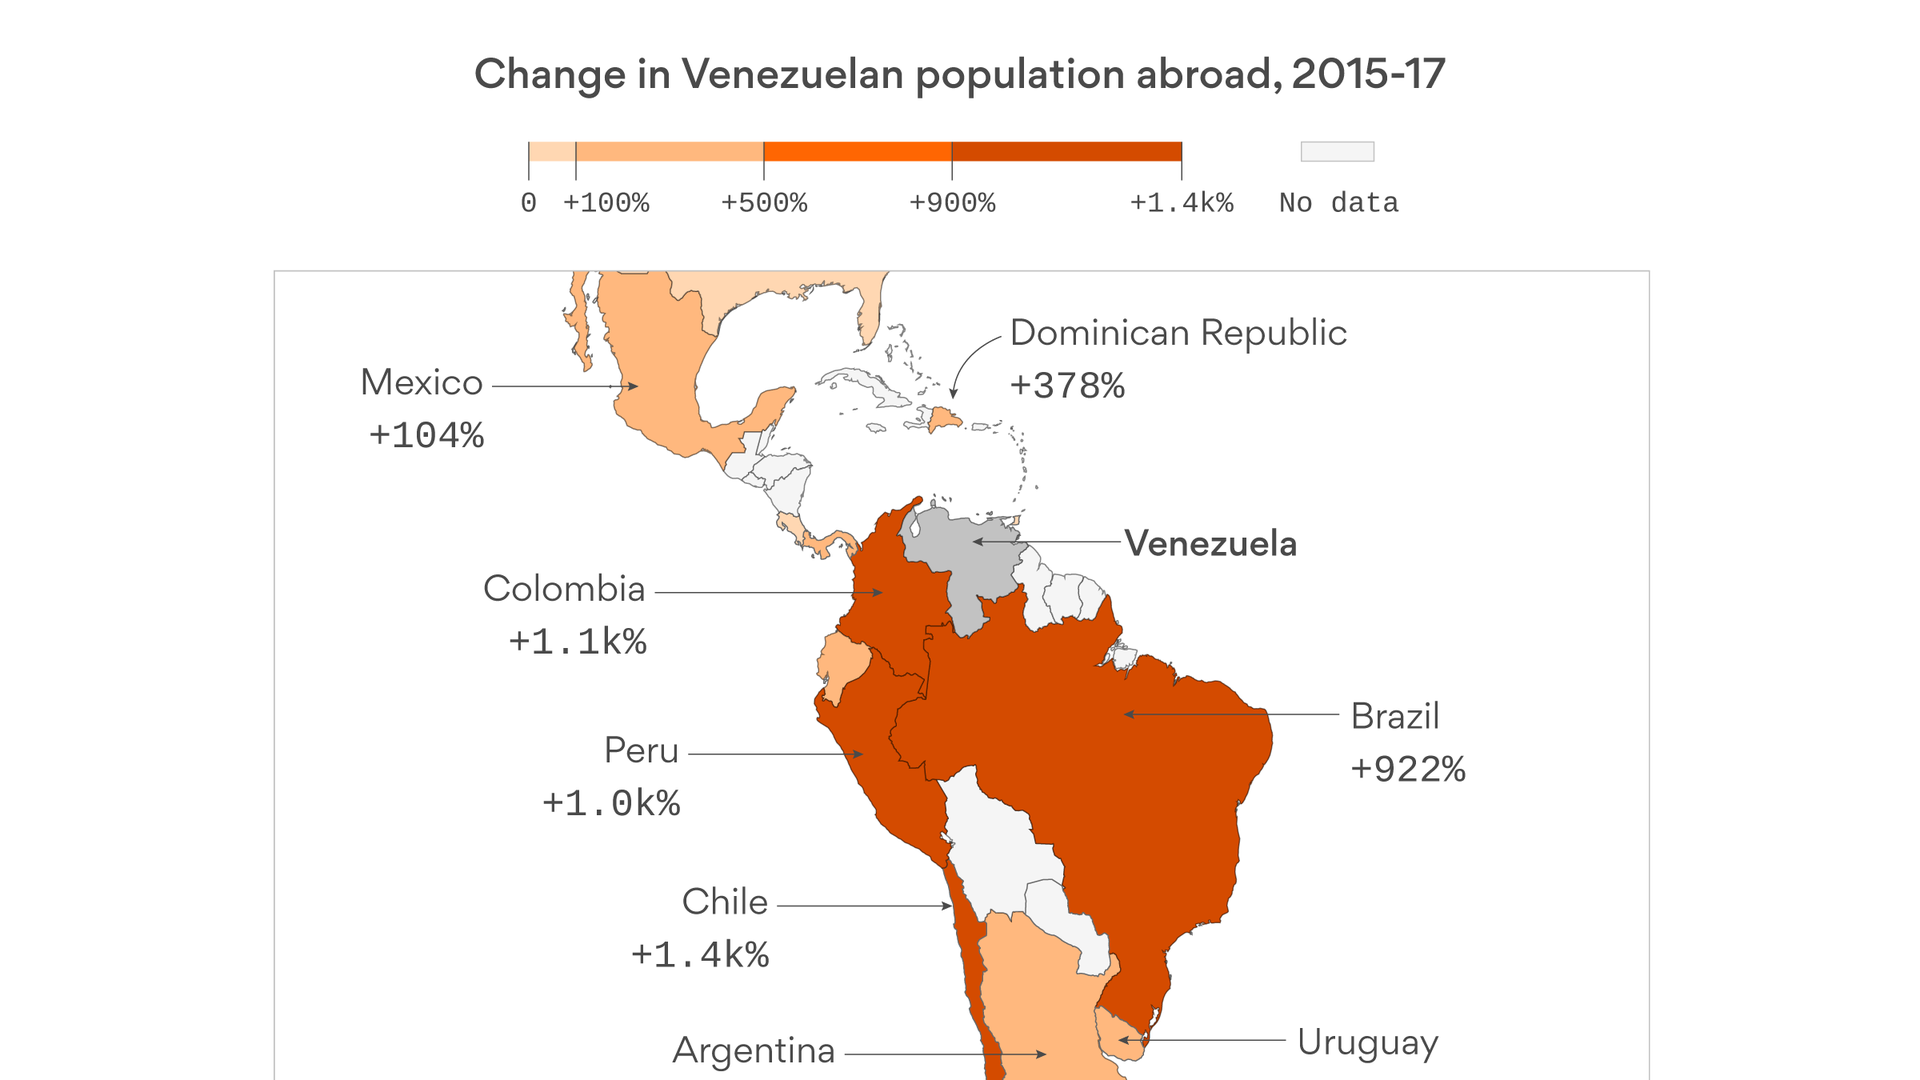 The new global migrant crisis is in the Americas - Axios Only Labeled Map Of Venezuela on labeled map of pennsylvania, labeled map of united kingdom, labeled map of the u.s, labeled map of tobago, labeled map of nigeria, labeled map of the british isles, labeled map of bodies of water, labeled map of fiji islands, labeled map of switzerland, labeled map of trinidad, labeled map of northern europe, labeled map of the caribbean islands, labeled map of iran, labeled map of new caledonia, labeled map of amazon river, labeled map of indochina, labeled map of western united states, labeled map of syria, labeled map of ussr, labeled map of iraq,